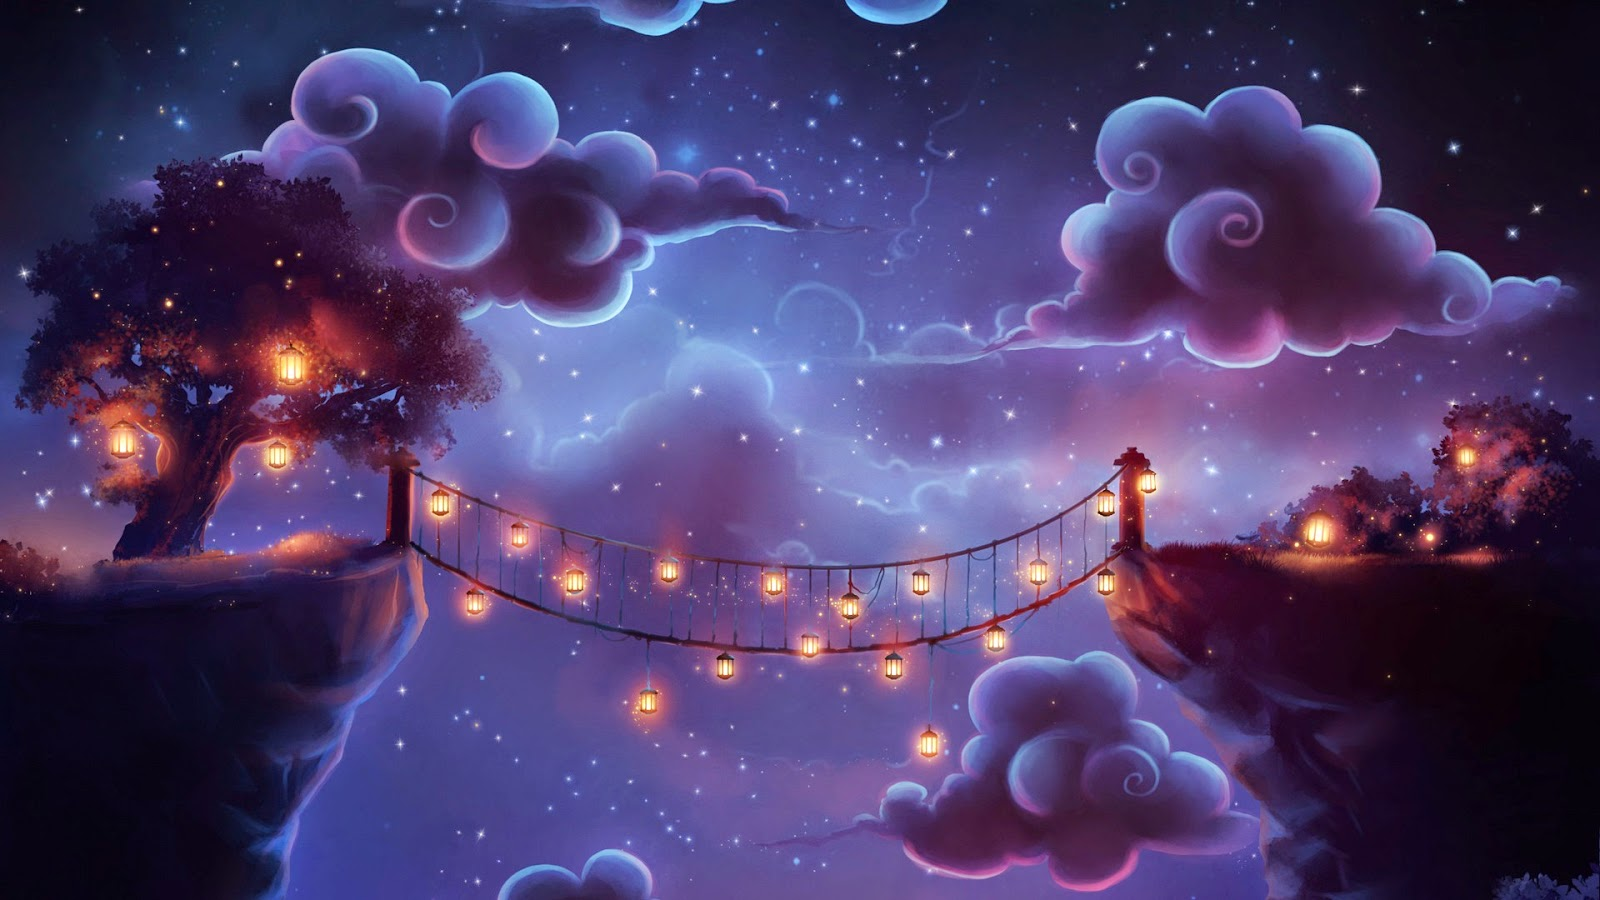 amazing-Lovely-night-fantasy-decoration-with-clouds-tree-house-light.jpg